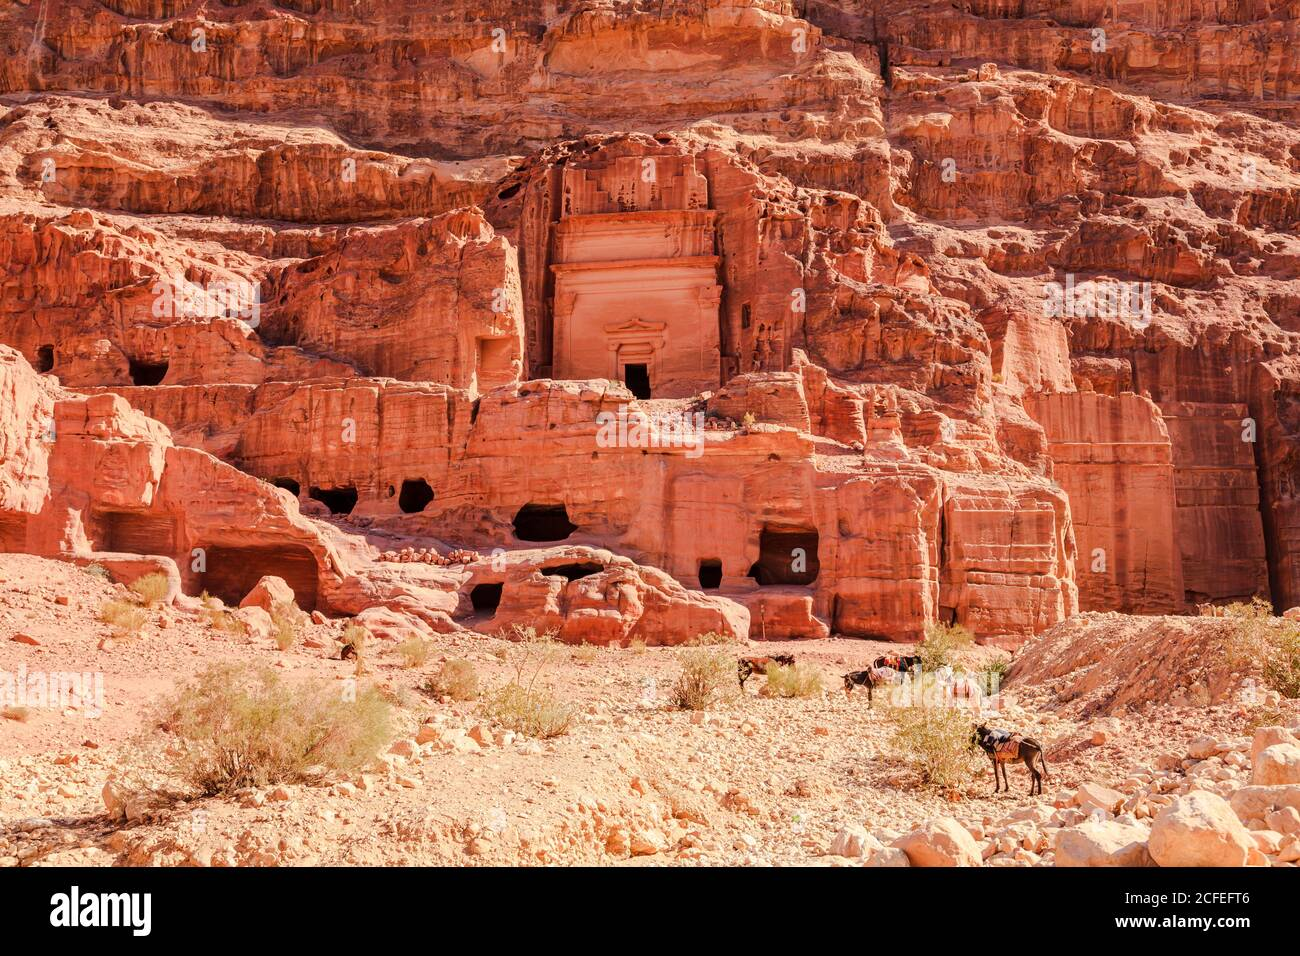 View of tombs at the Lost City of Petra in Jordan. Stock Photo